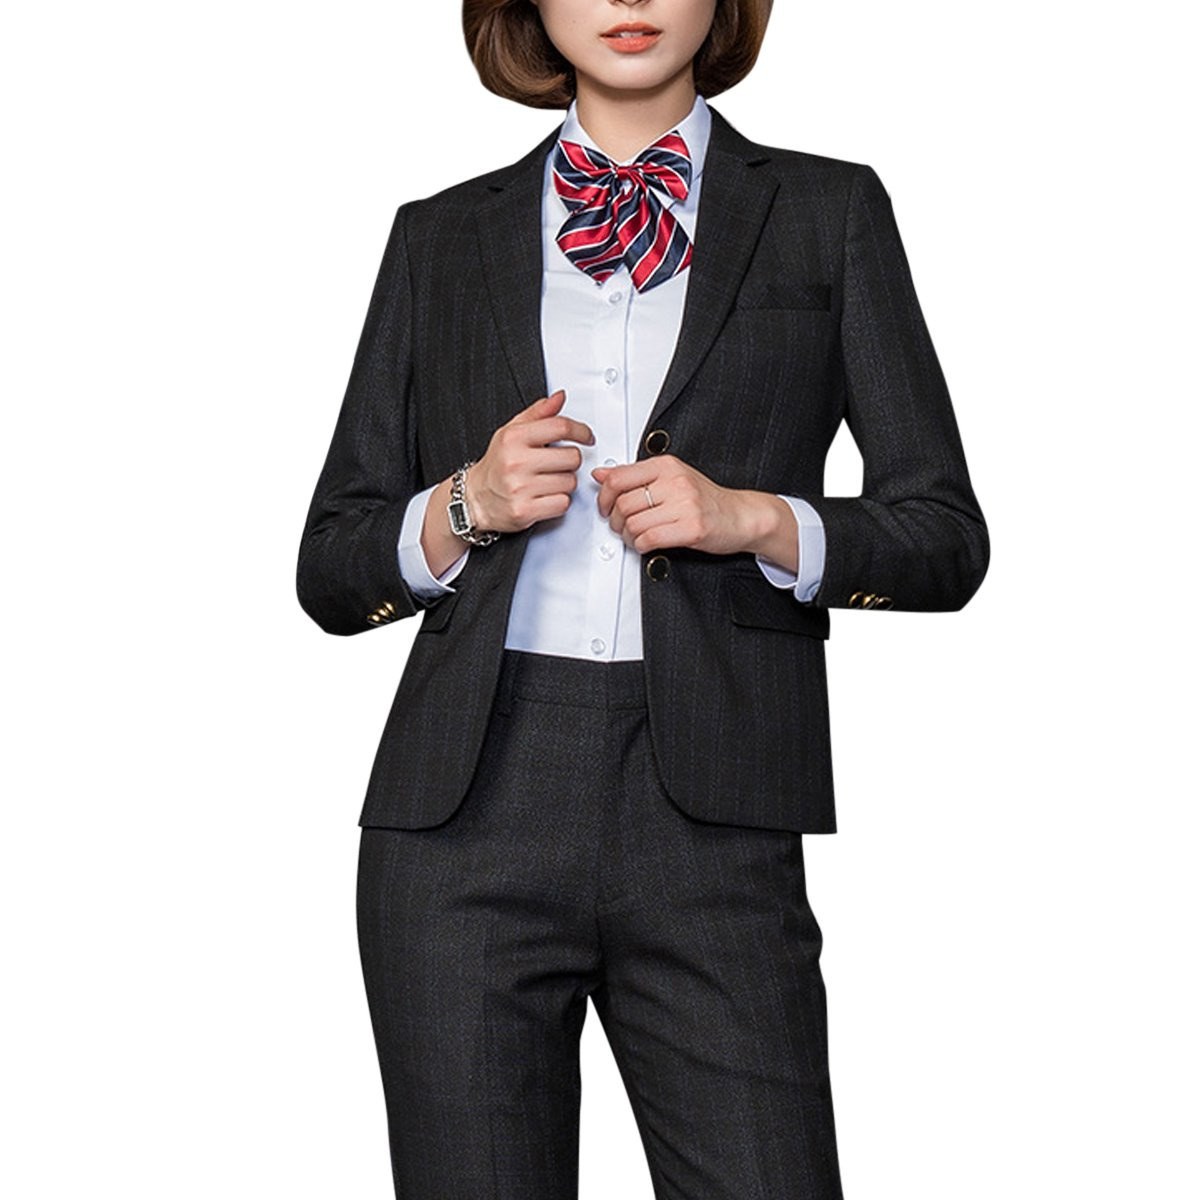 YUNCLOS Women's Two Piece Formal Office Business Suit Set OL Blazer Pant by YUNCLOS